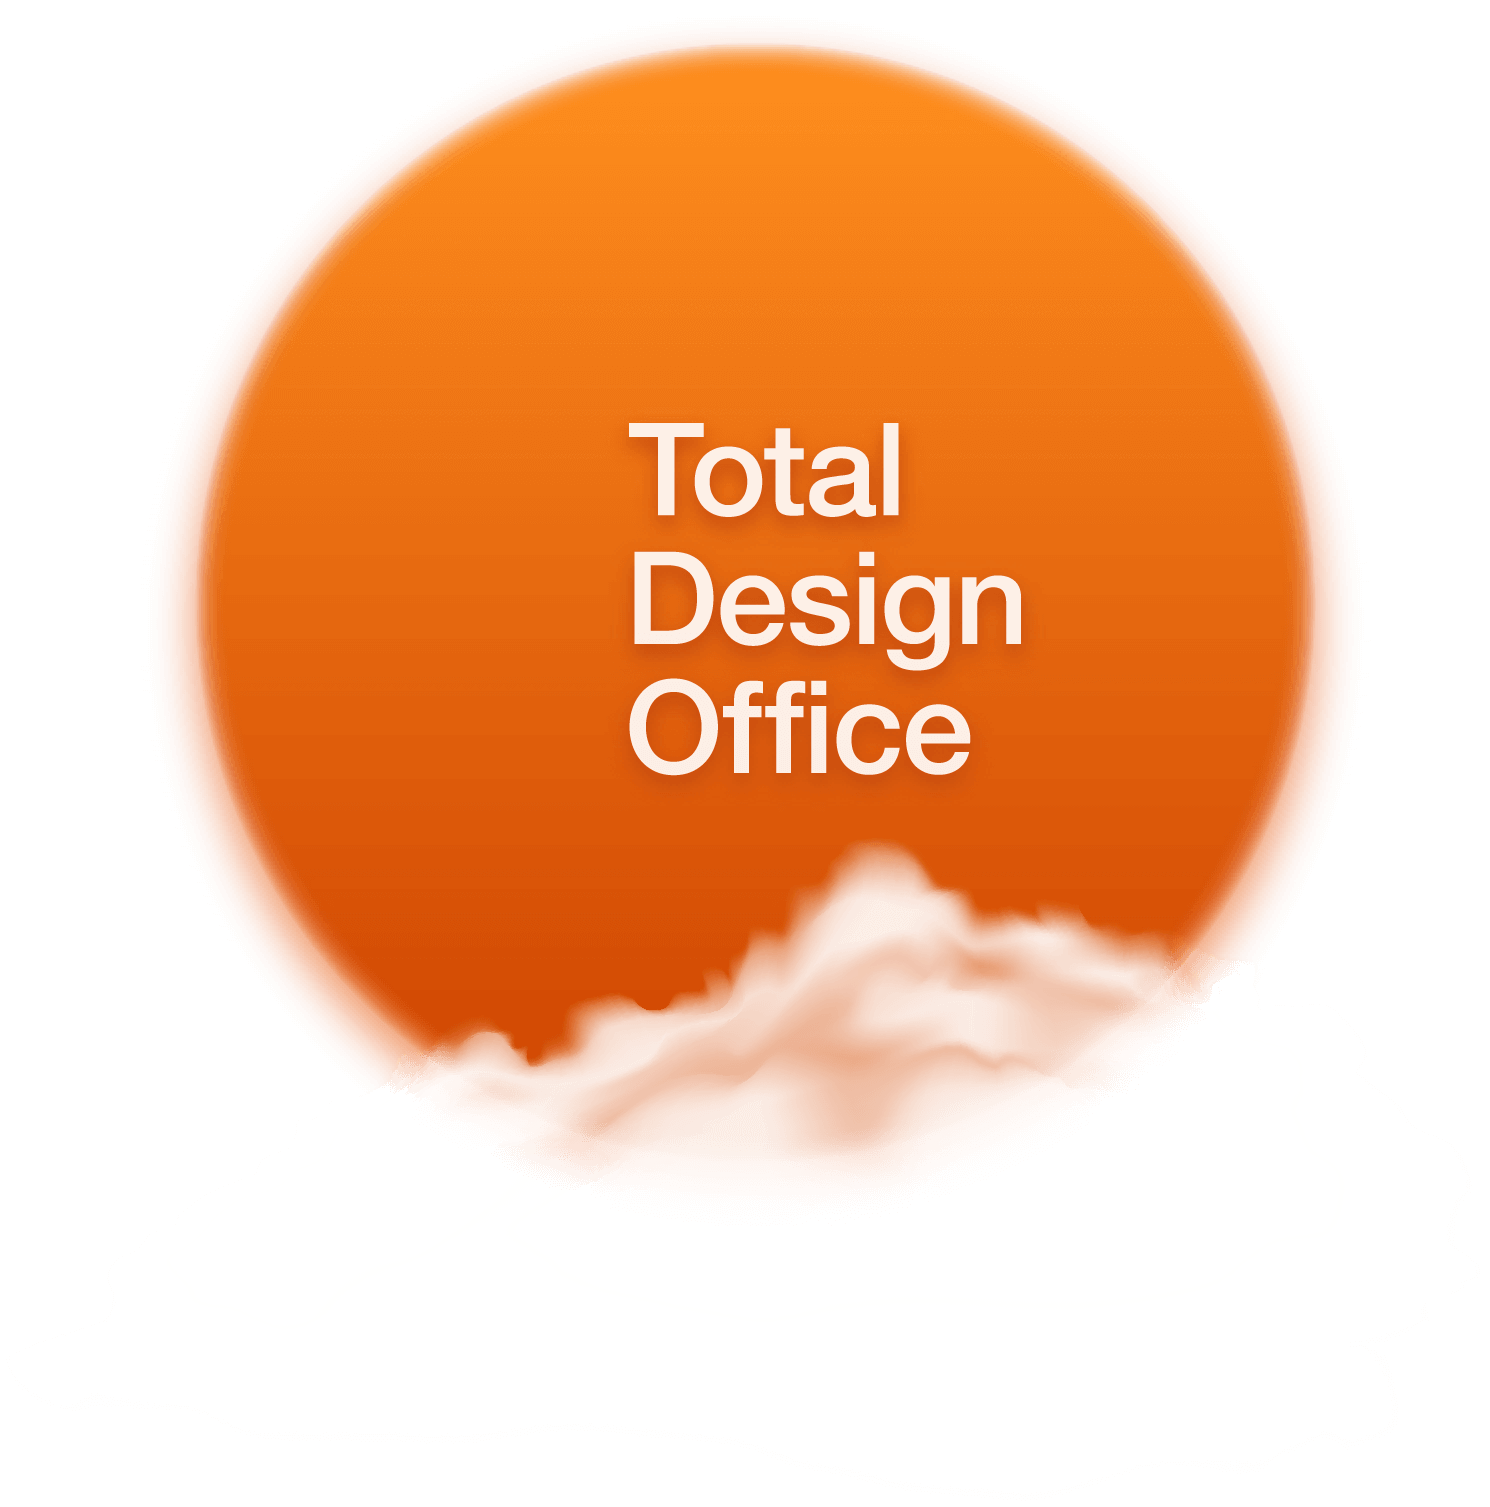 Total Design Office